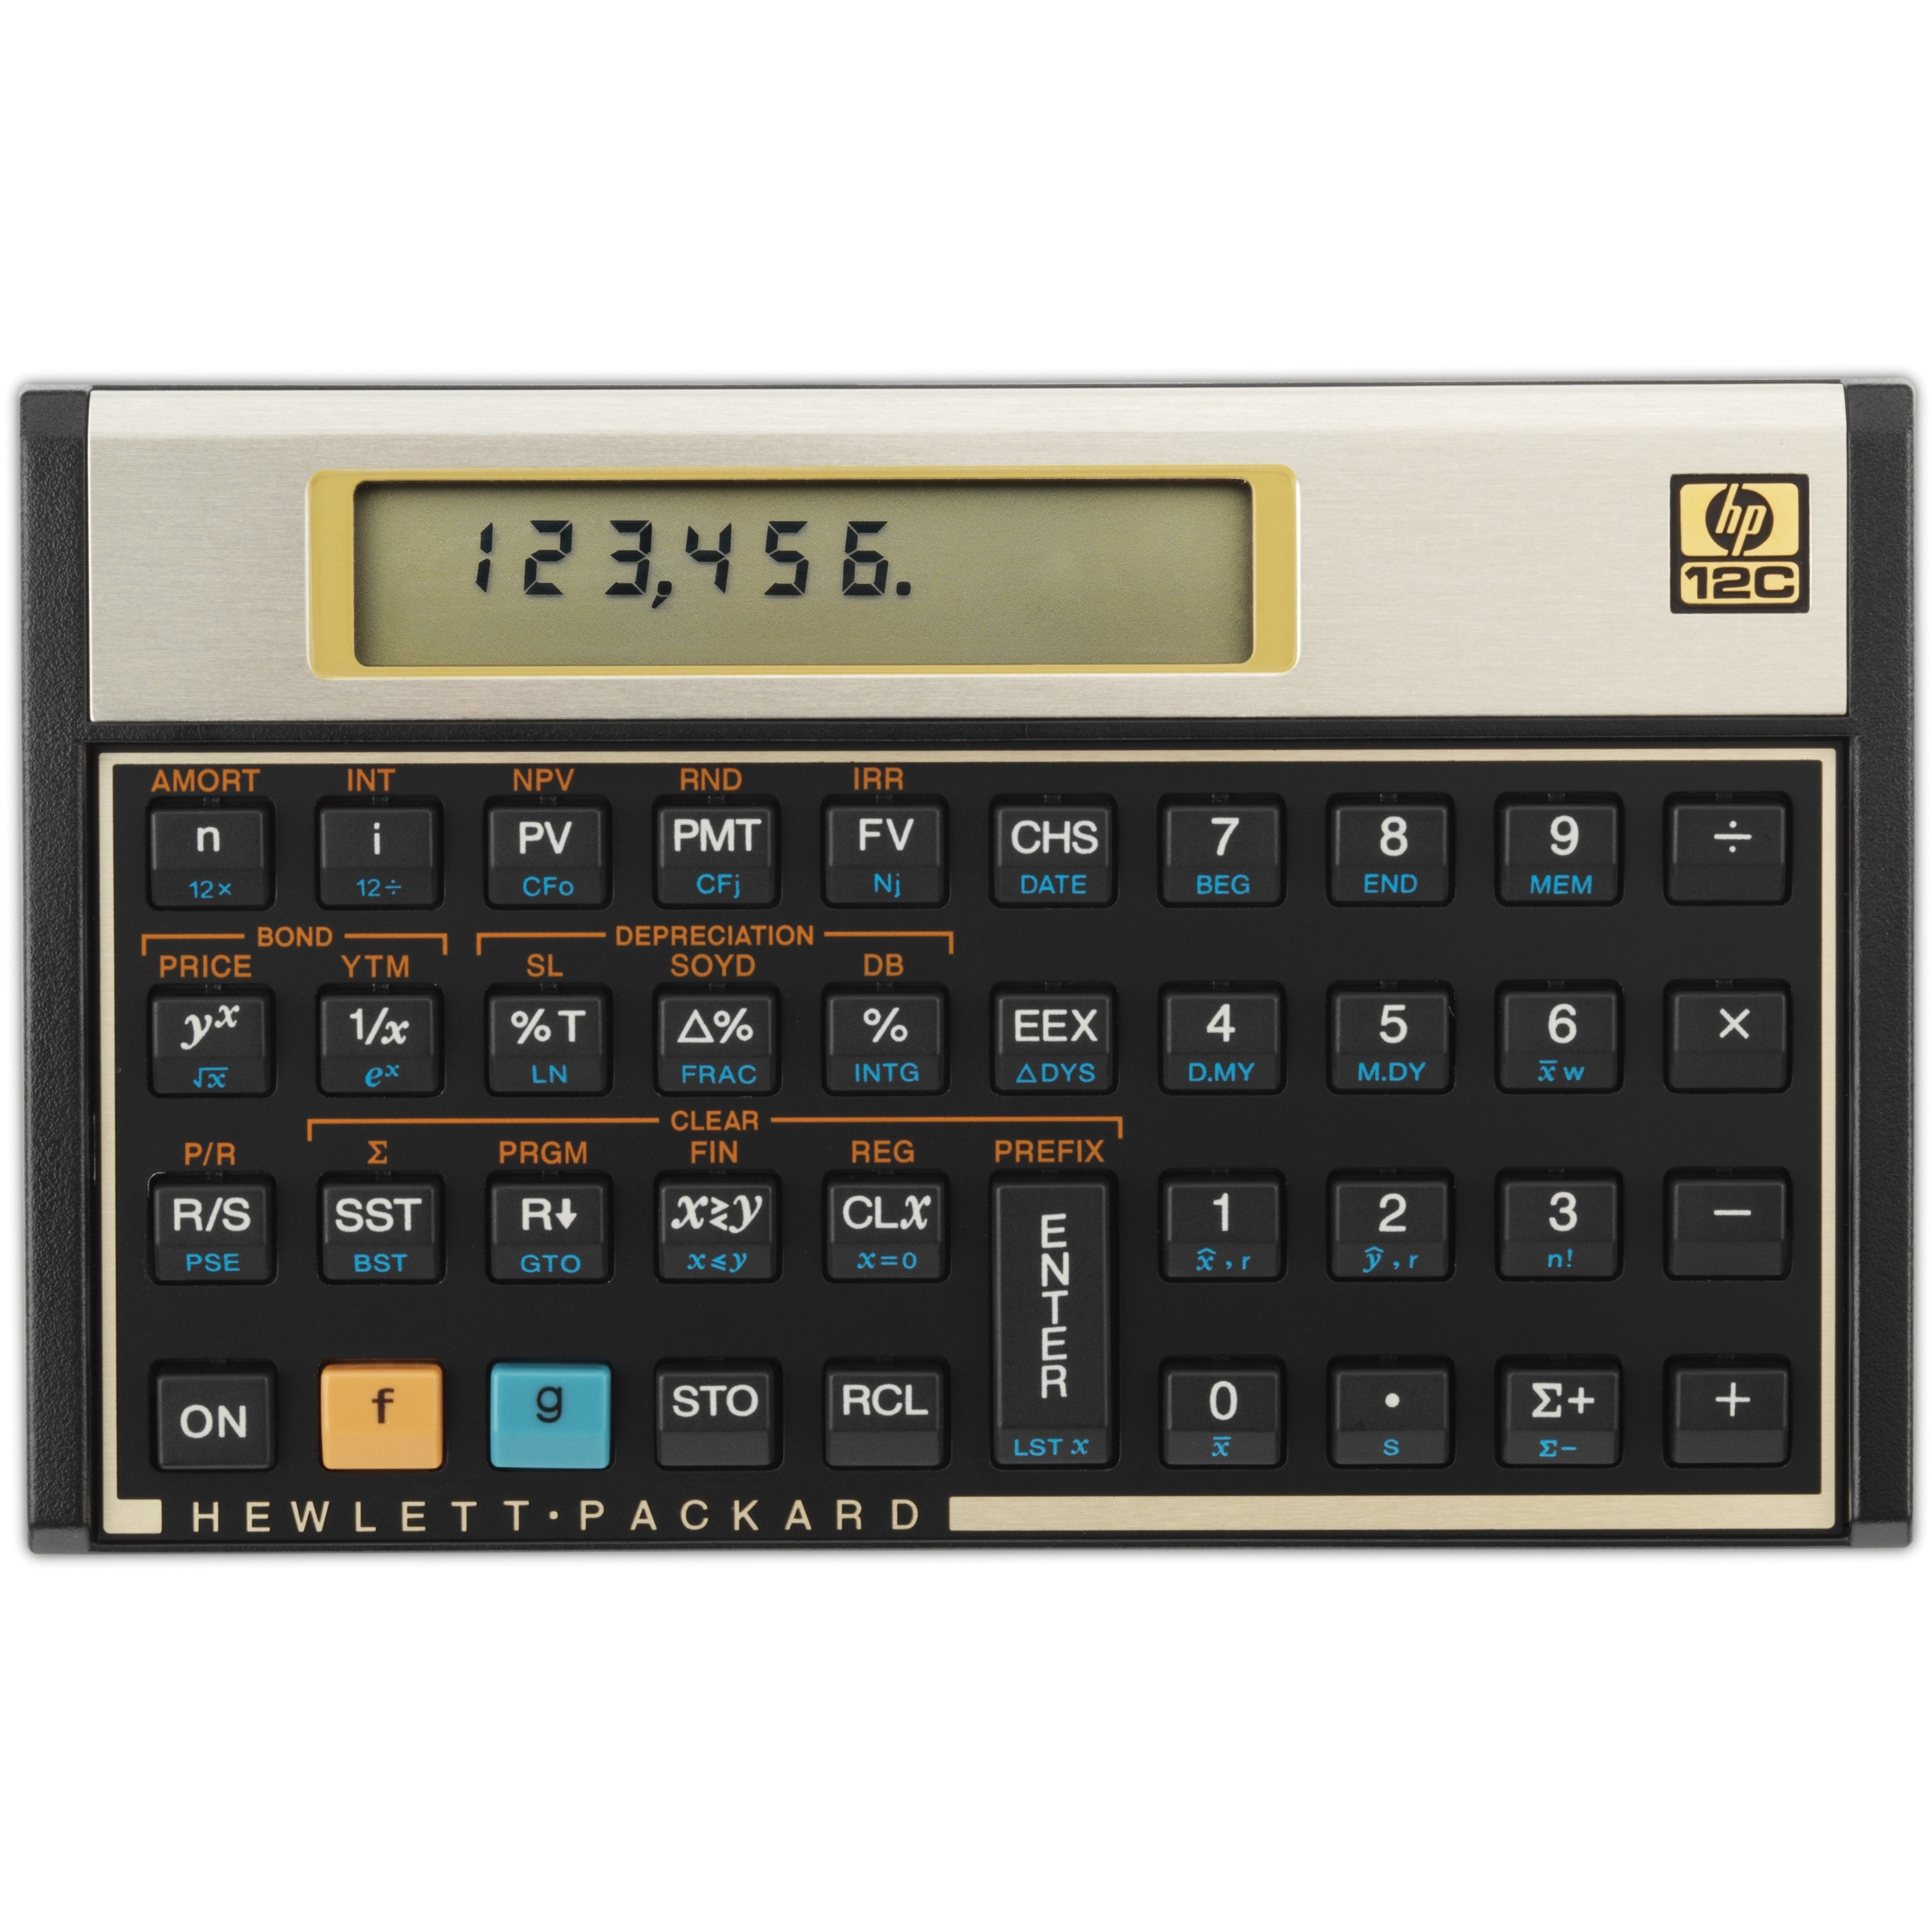 HP 12C Financial Programmable Calculator, 10 Digit LCD